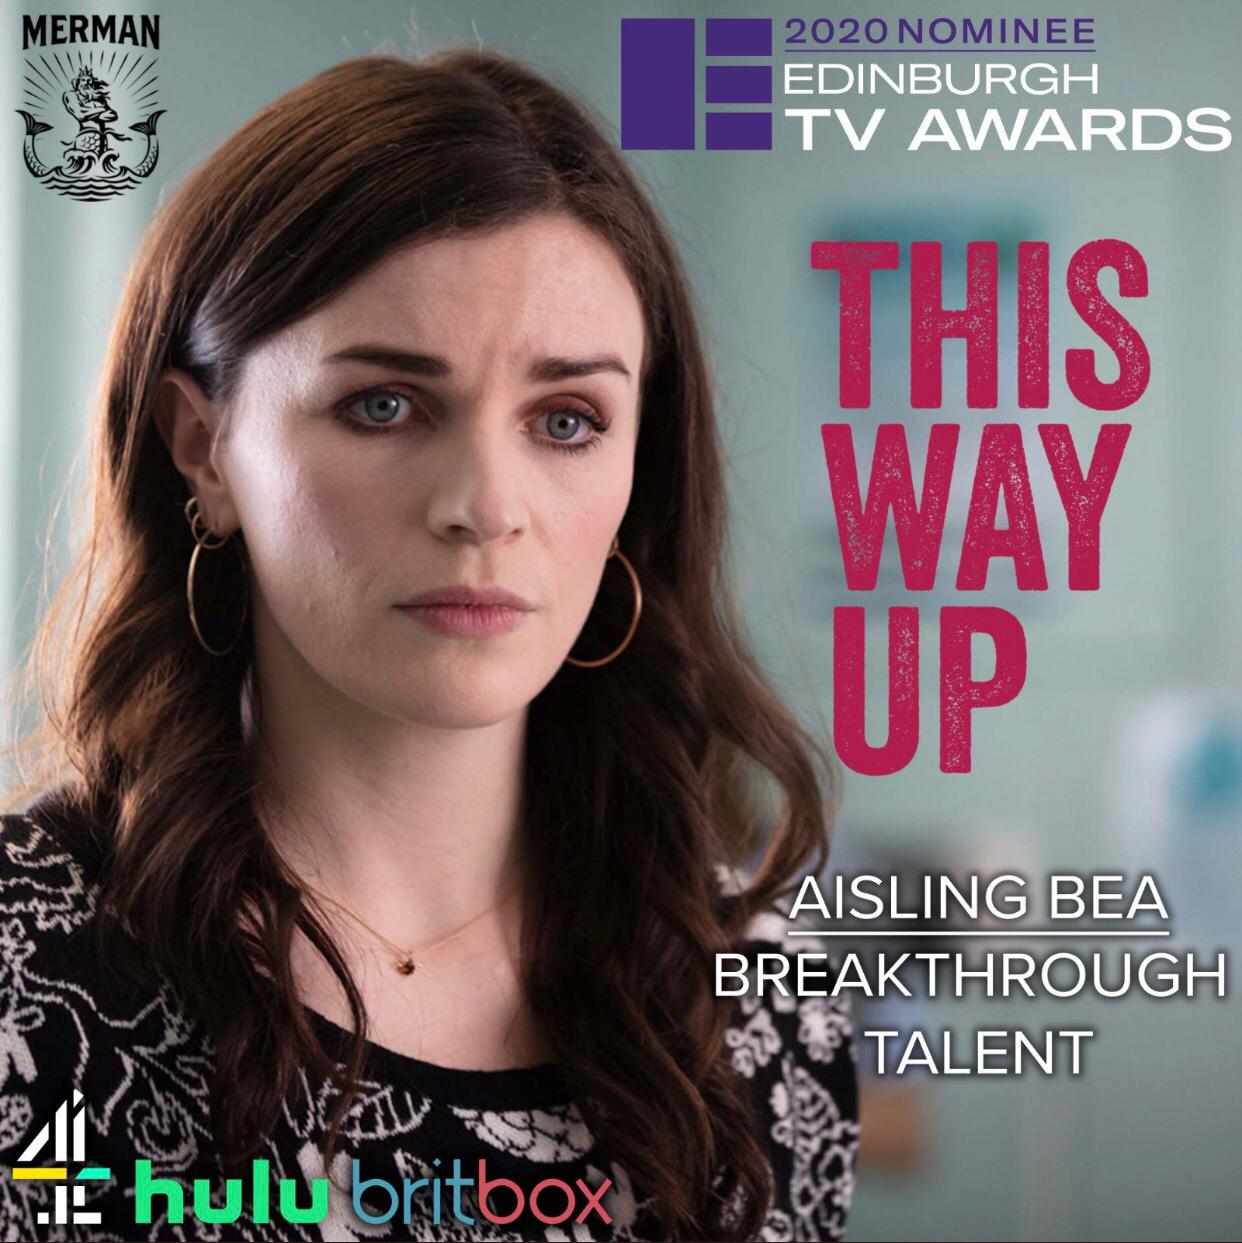 Aisling Bea Nominated for Breakthrough Talent Award  - August 26th, 2020